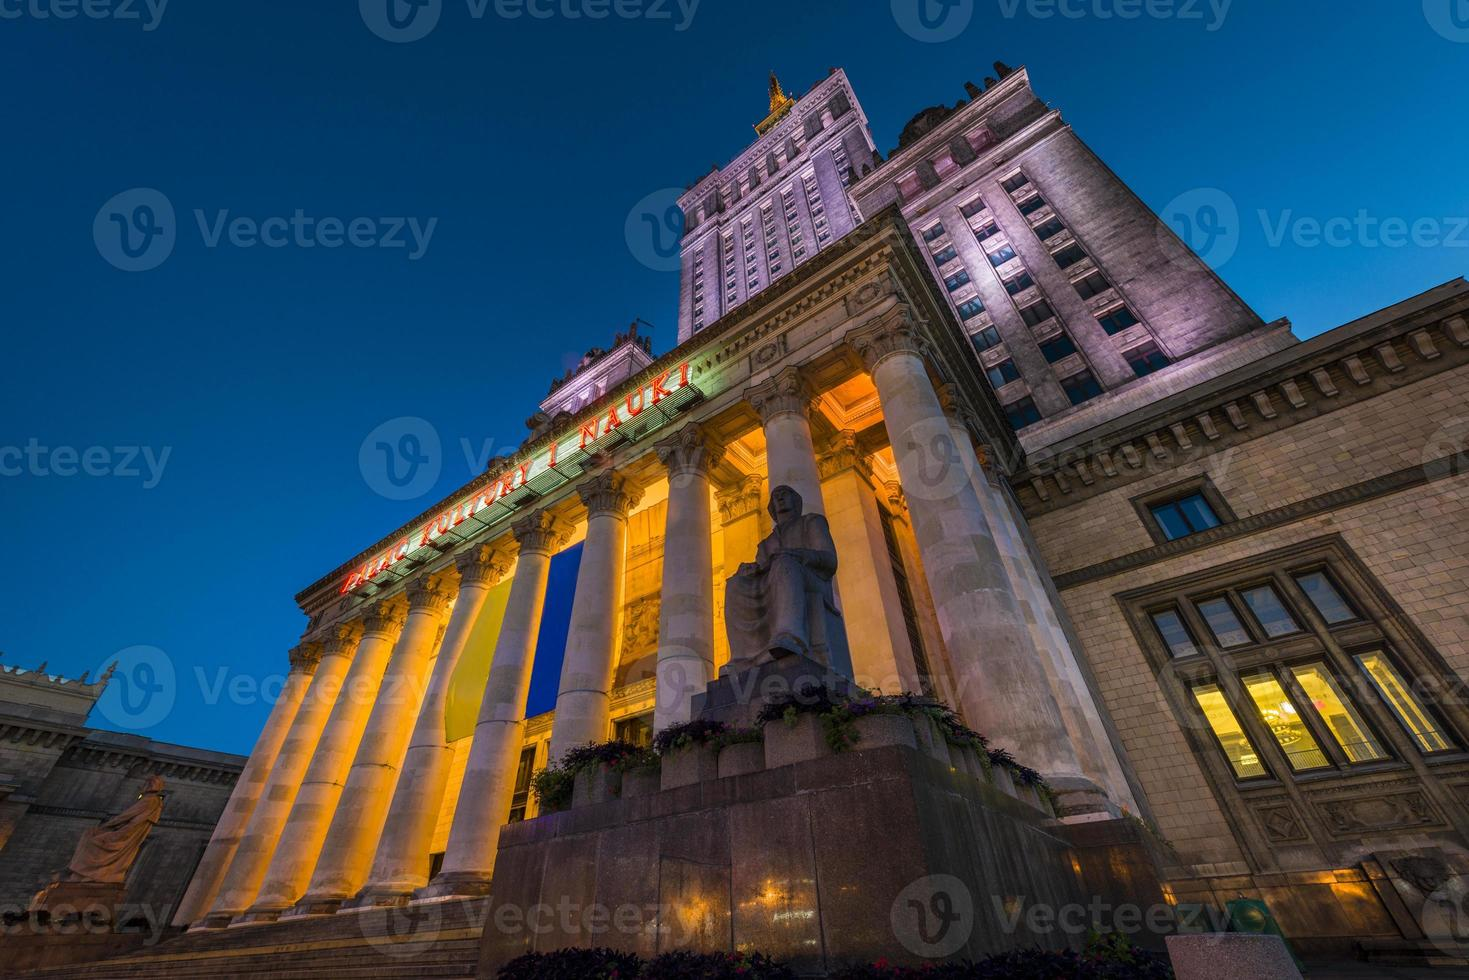 Palace of Culture in Warsaw at night time photo